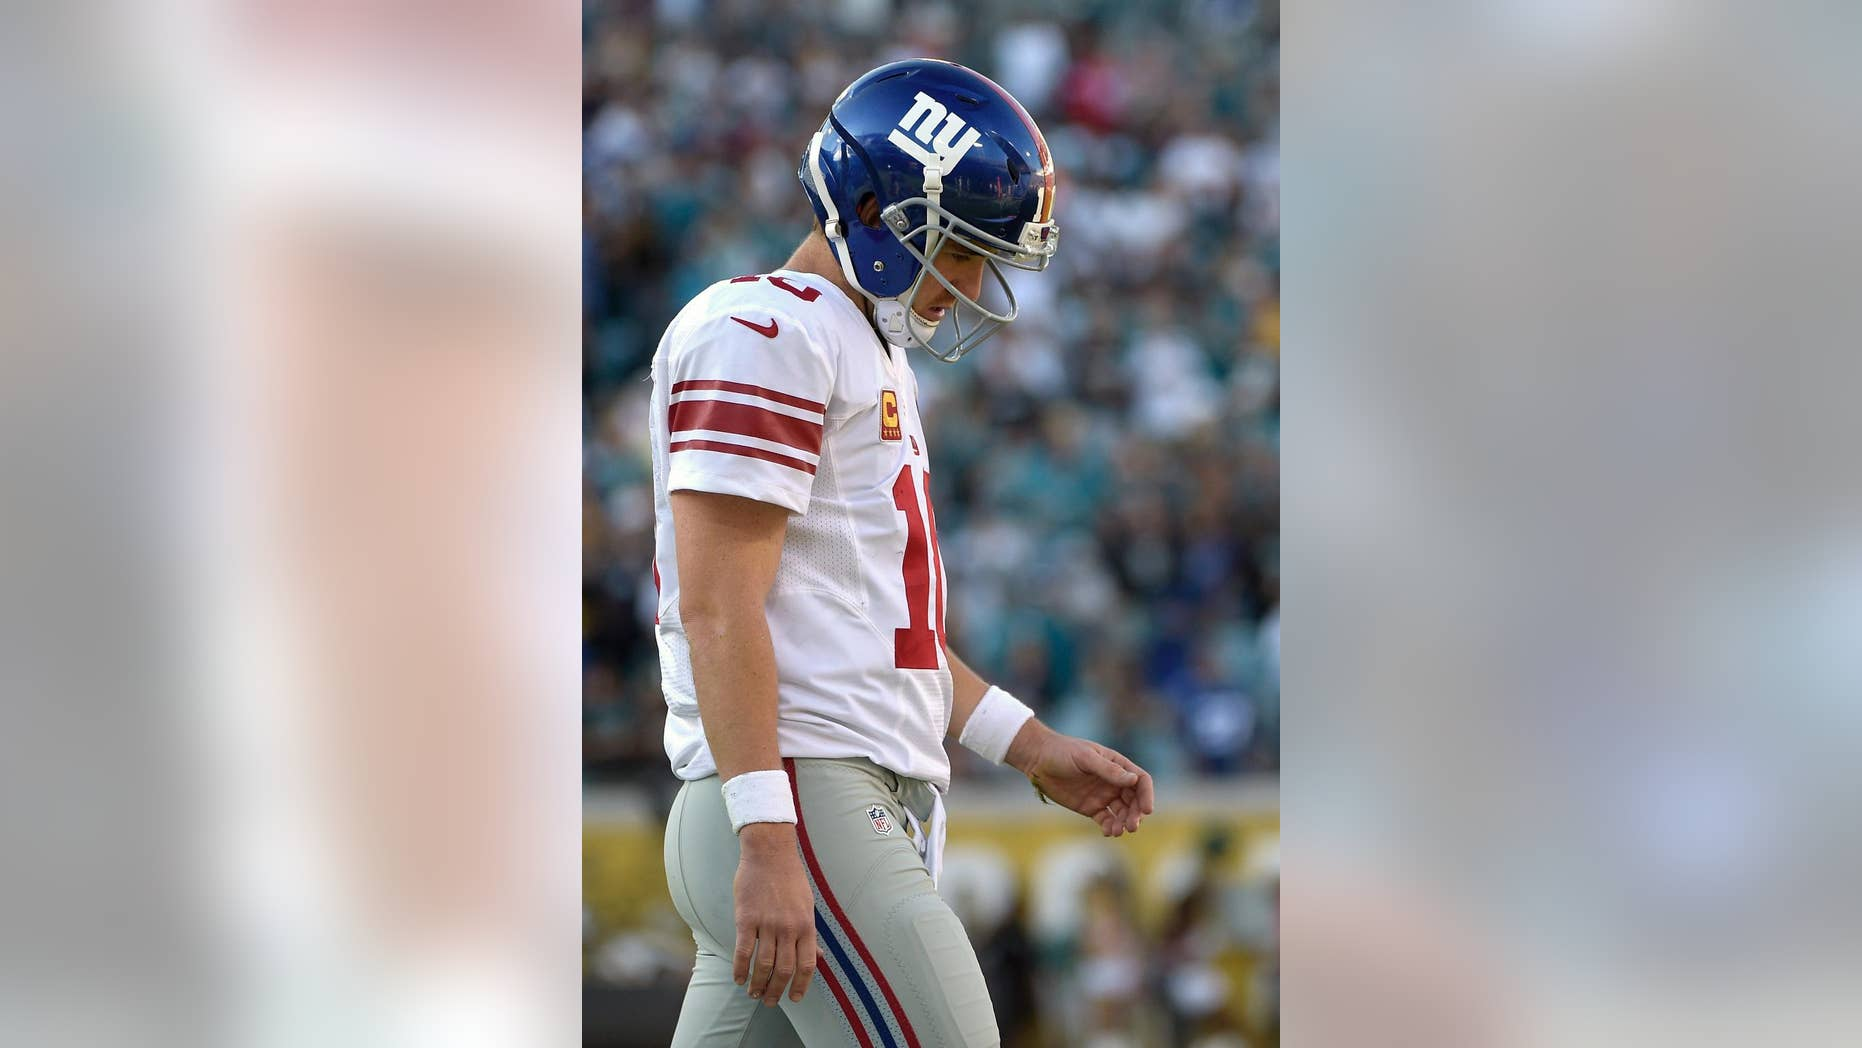 New York Giants quarterback Eli Manning (10) walks off the field after fumbling on their final possession of the second half of an NFL football game against the Jacksonville Jaguars in Jacksonville, Fla., Sunday, Nov. 30, 2014. The Jaguars won 25-24.(AP Photo/Phelan M. Ebenhack)